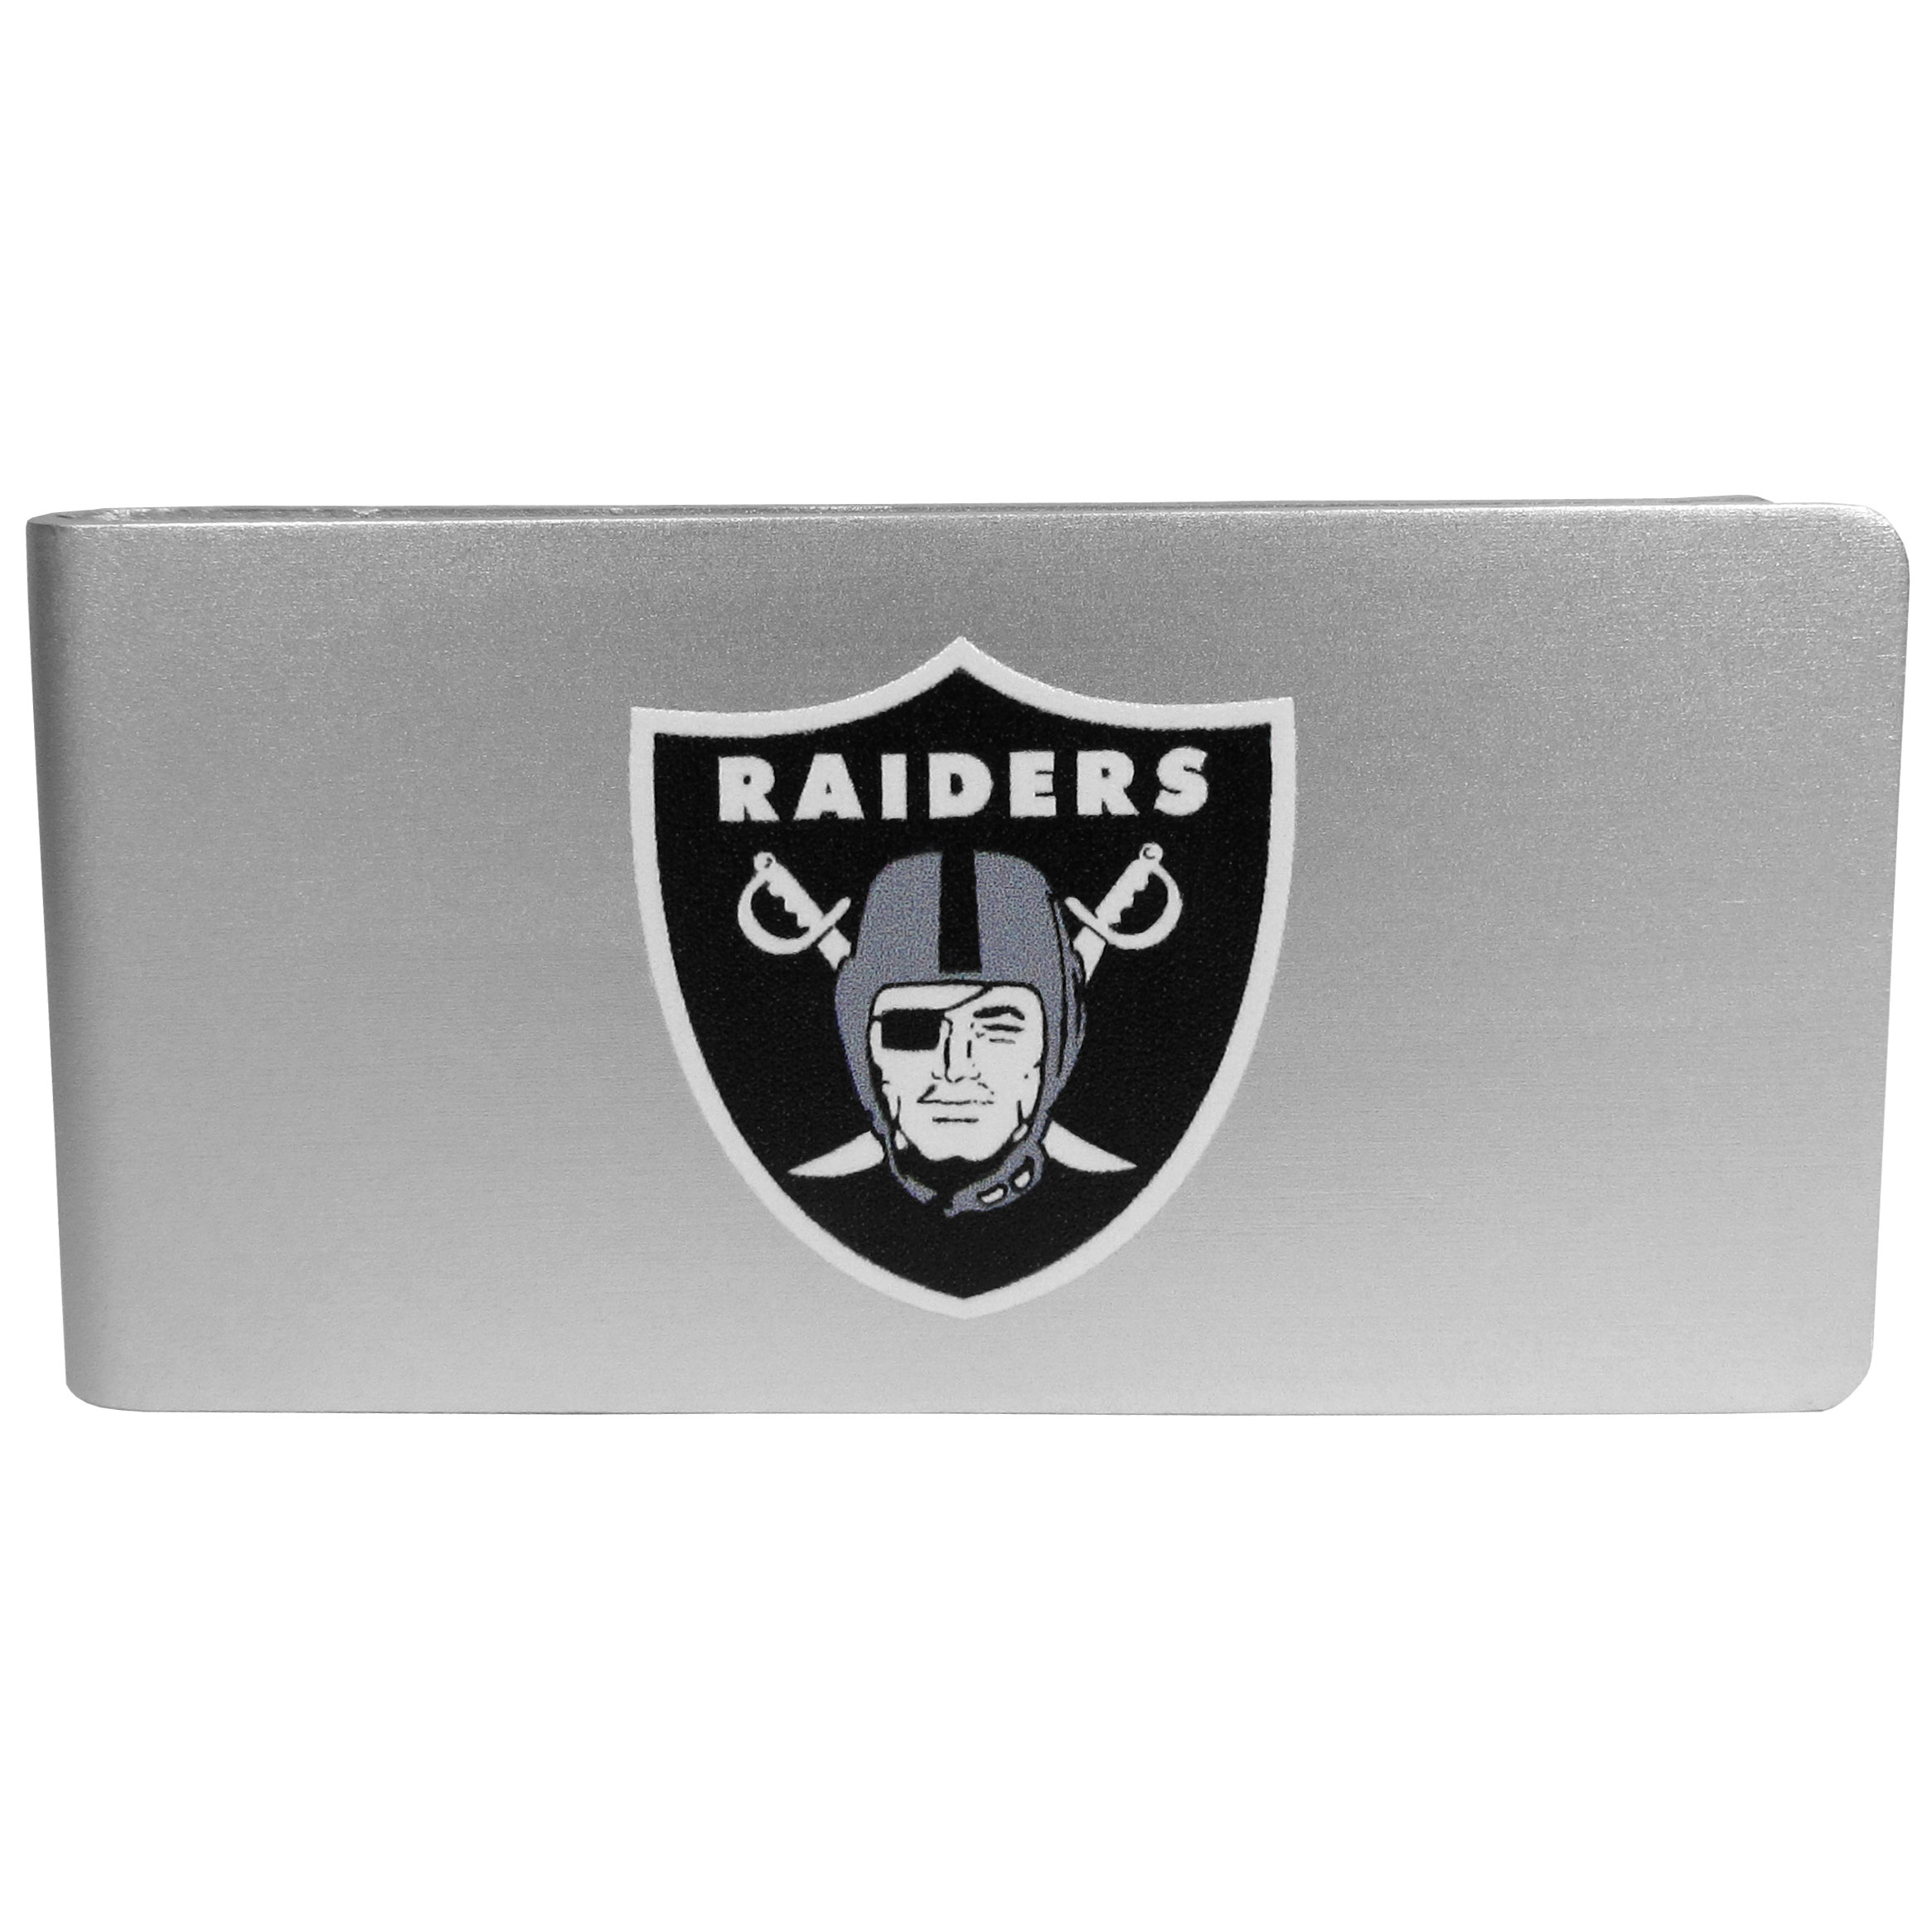 Oakland Raiders Logo Money Clip - Our brushed metal money clip has classic style and functionality. The attractive clip features the Oakland Raiders logo expertly printed on front.